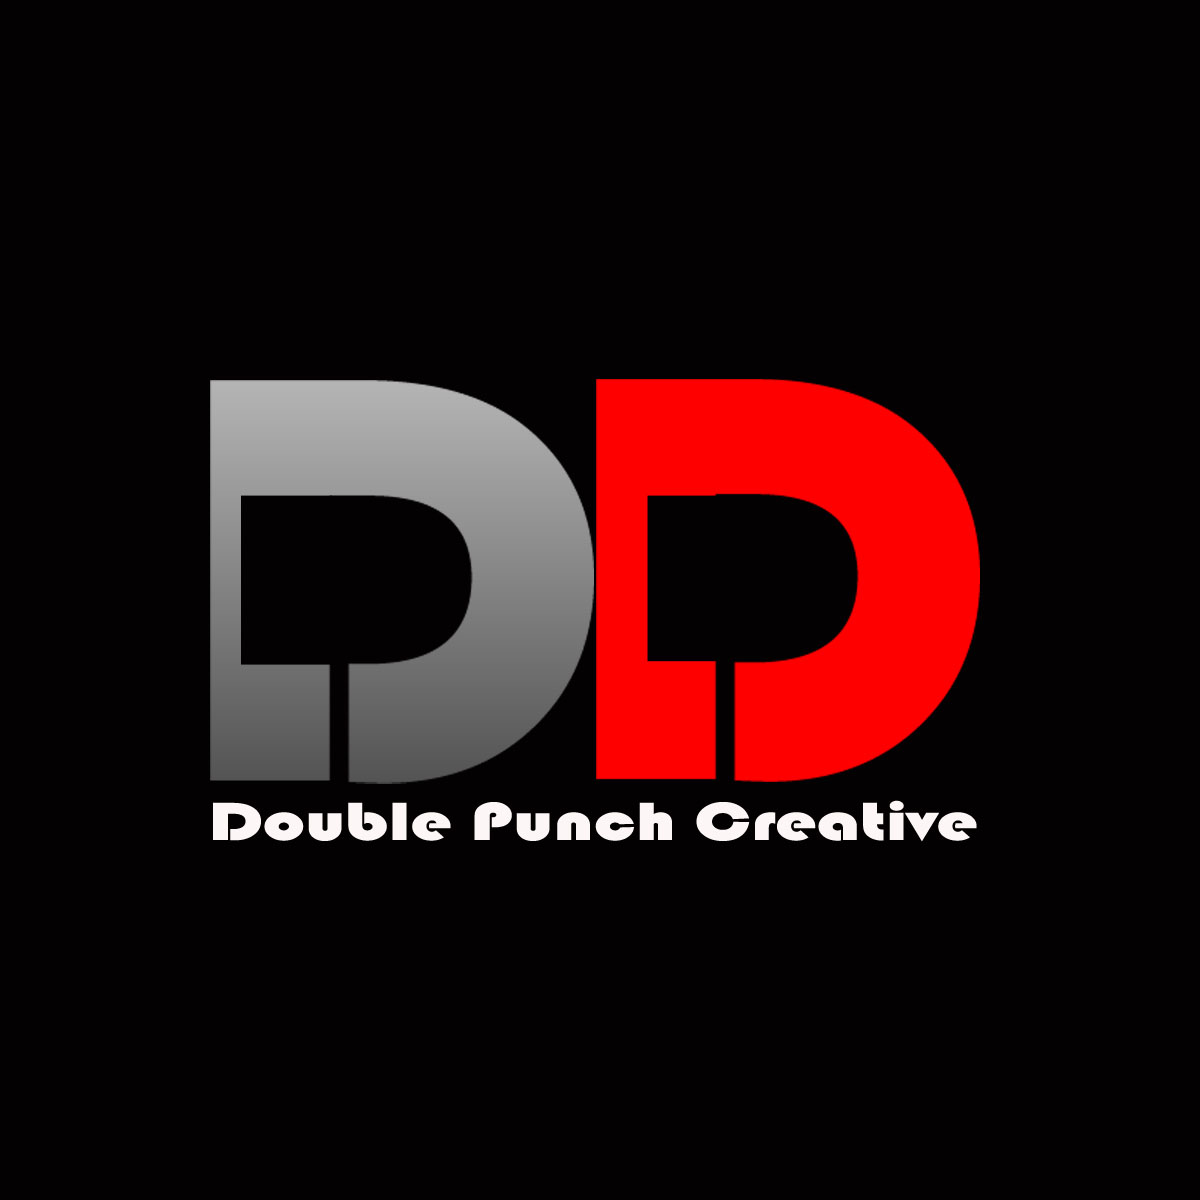 Logo Design by Moag - Entry No. 96 in the Logo Design Contest Unique Logo Design Wanted for Double Punch Creative.